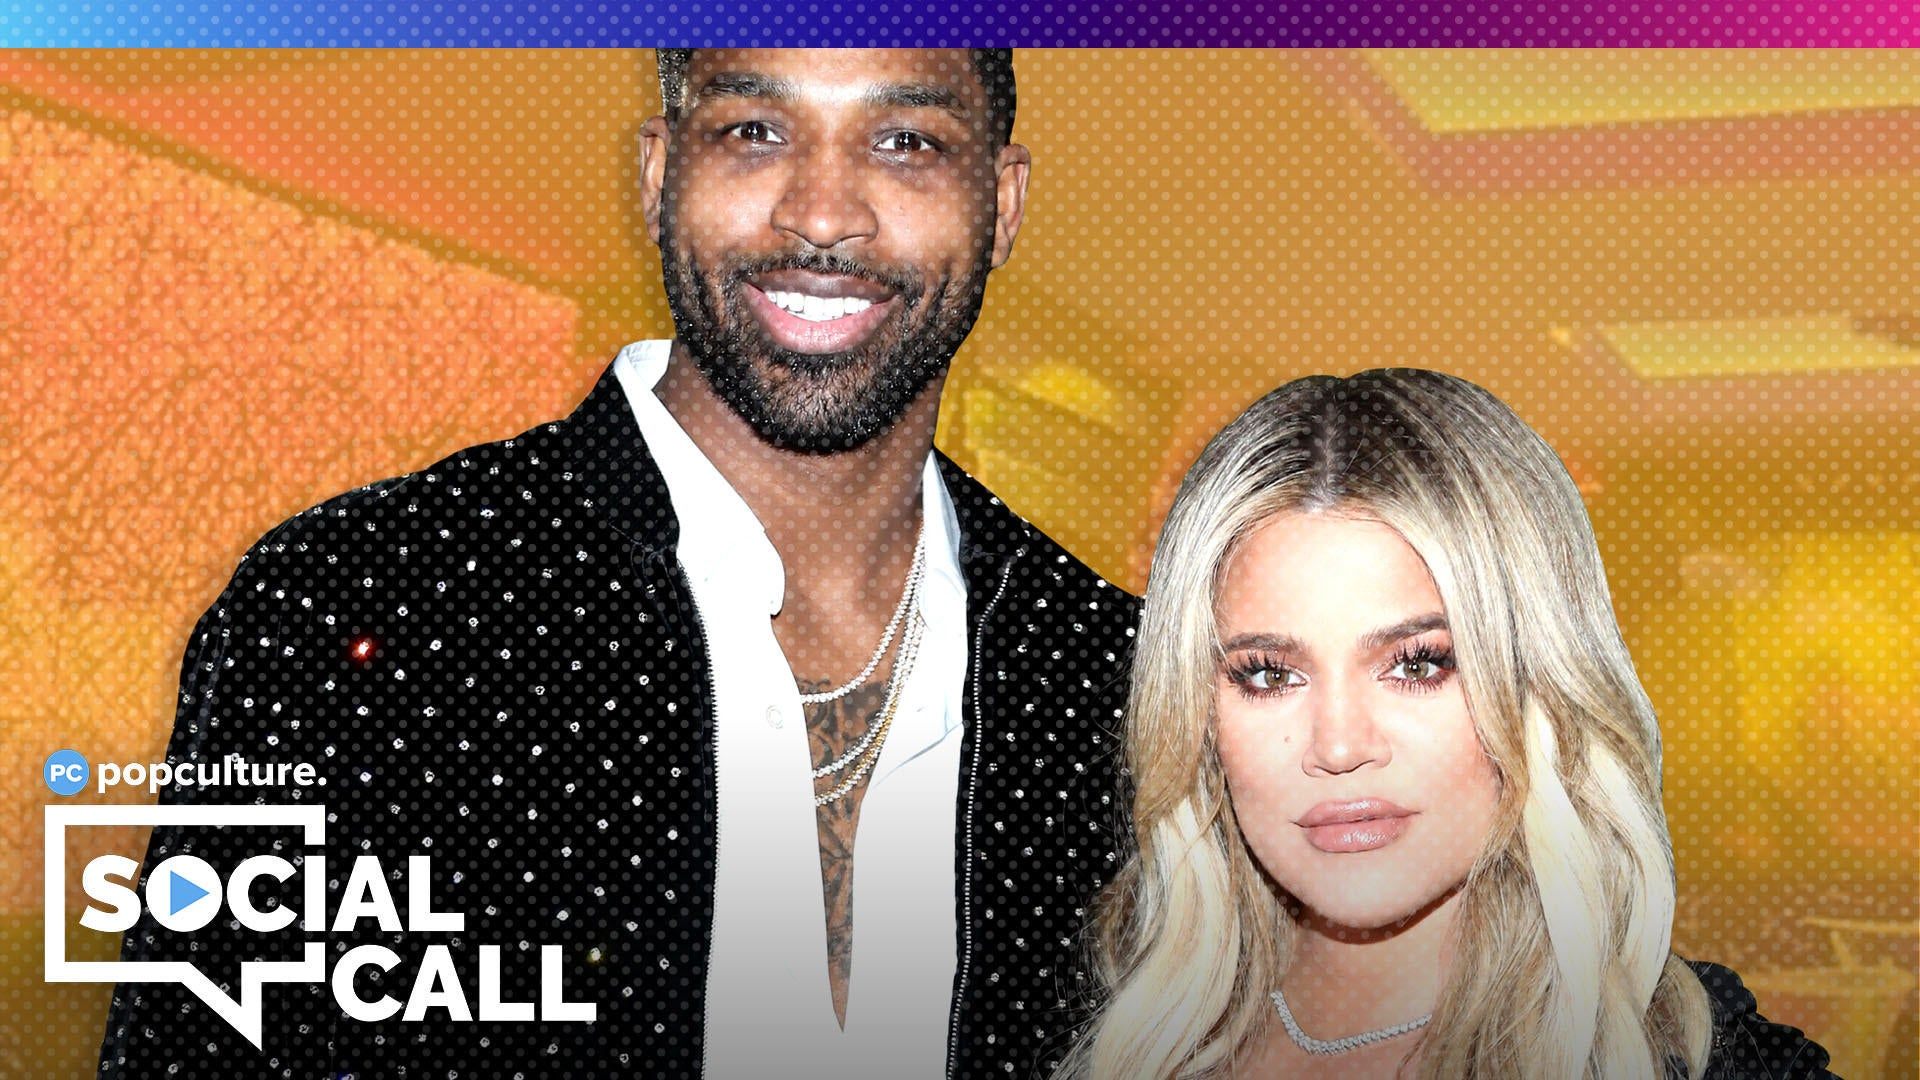 Popculture Social Call- Khloe Kardashian and Tristan Thompson Timeline